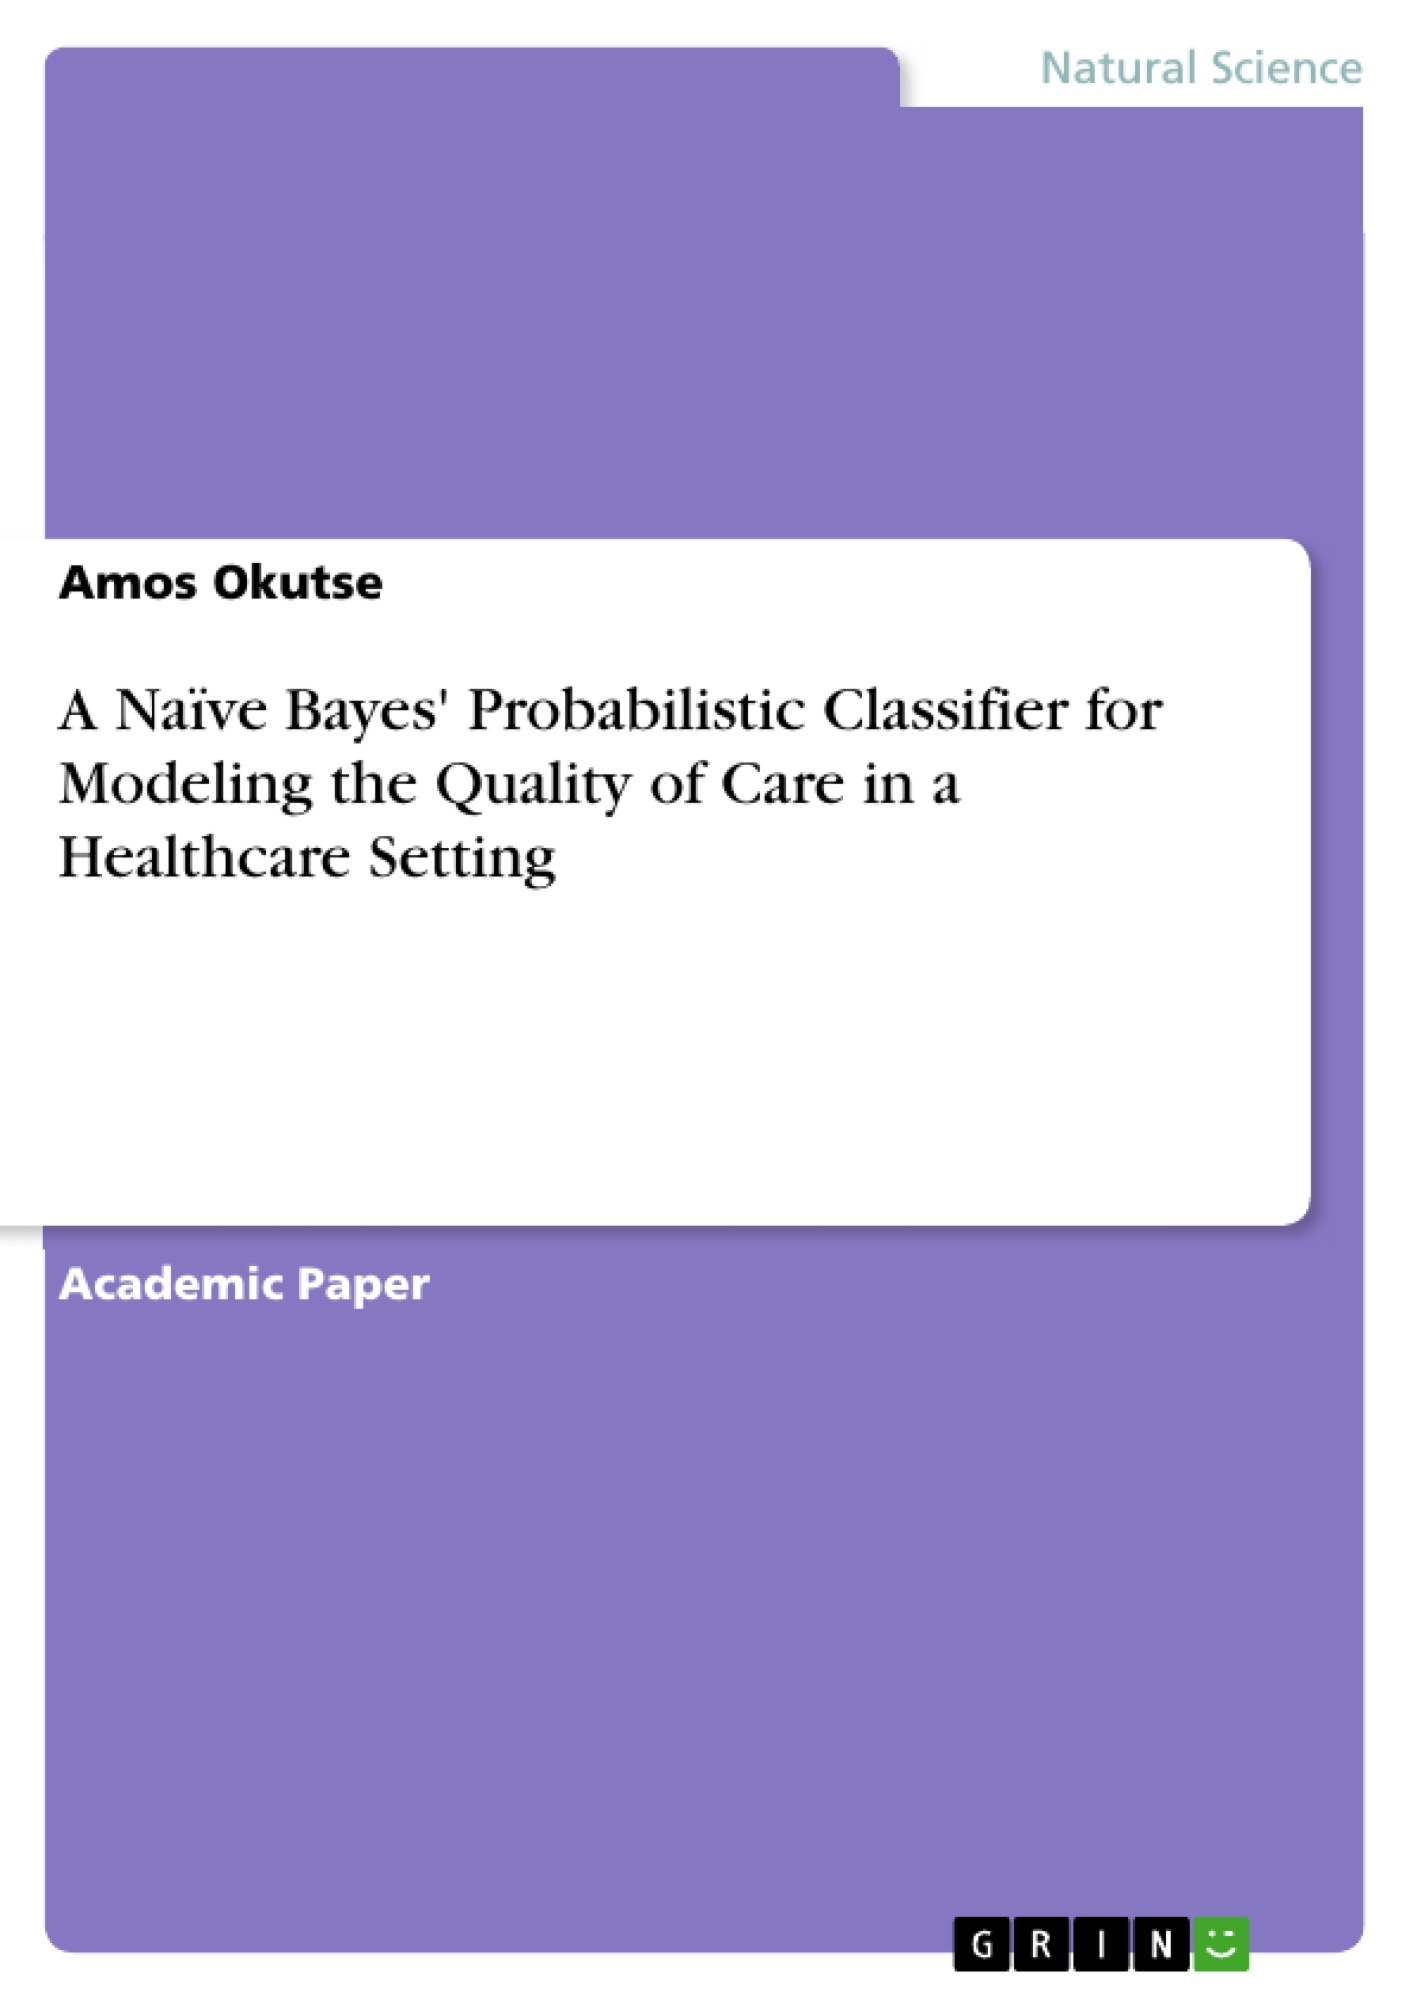 Title: A Naïve Bayes' Probabilistic Classifier for Modeling the Quality of Care in a Healthcare Setting